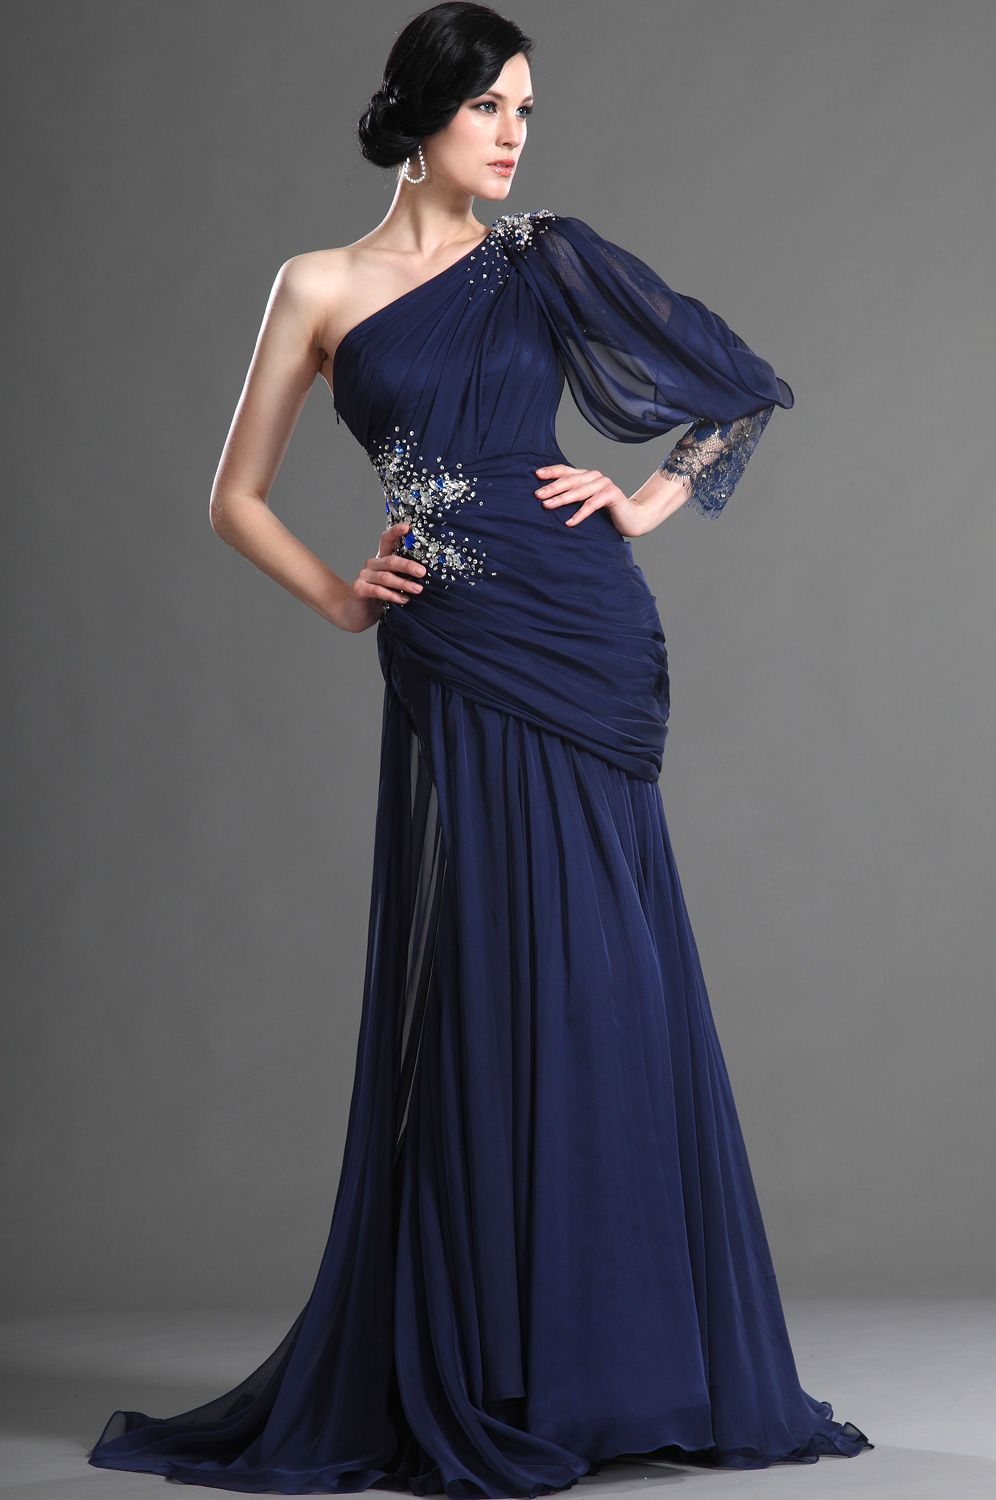 c810e7dcf4 Charming Fitted One Shoulder Dark Blue Evening Dress (02122005 ...